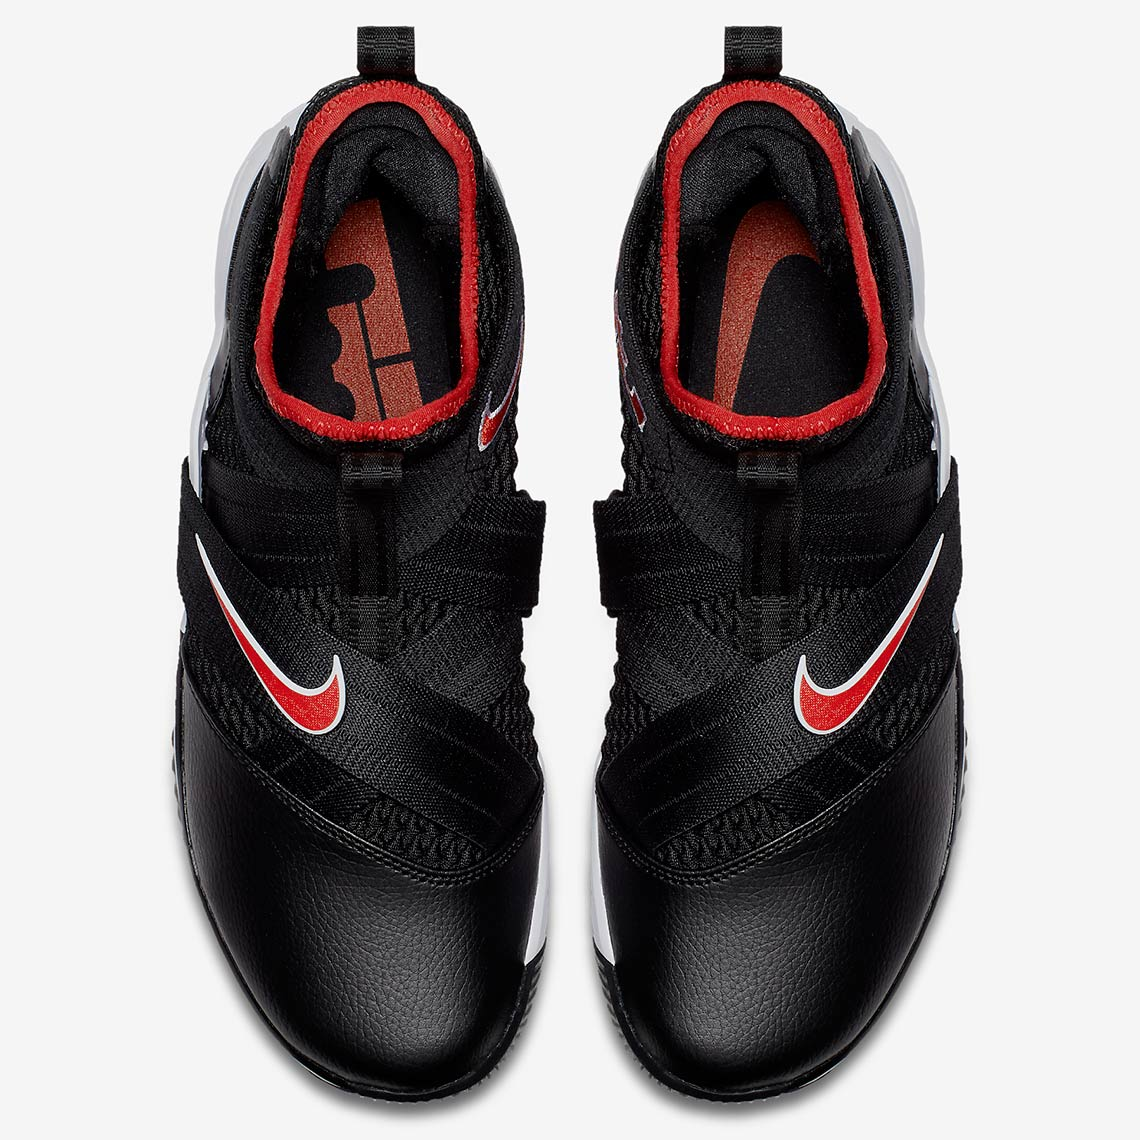 1c051087205c3 Nike LeBron Soldier 12 Black Red Release Info AO2609-001 ...